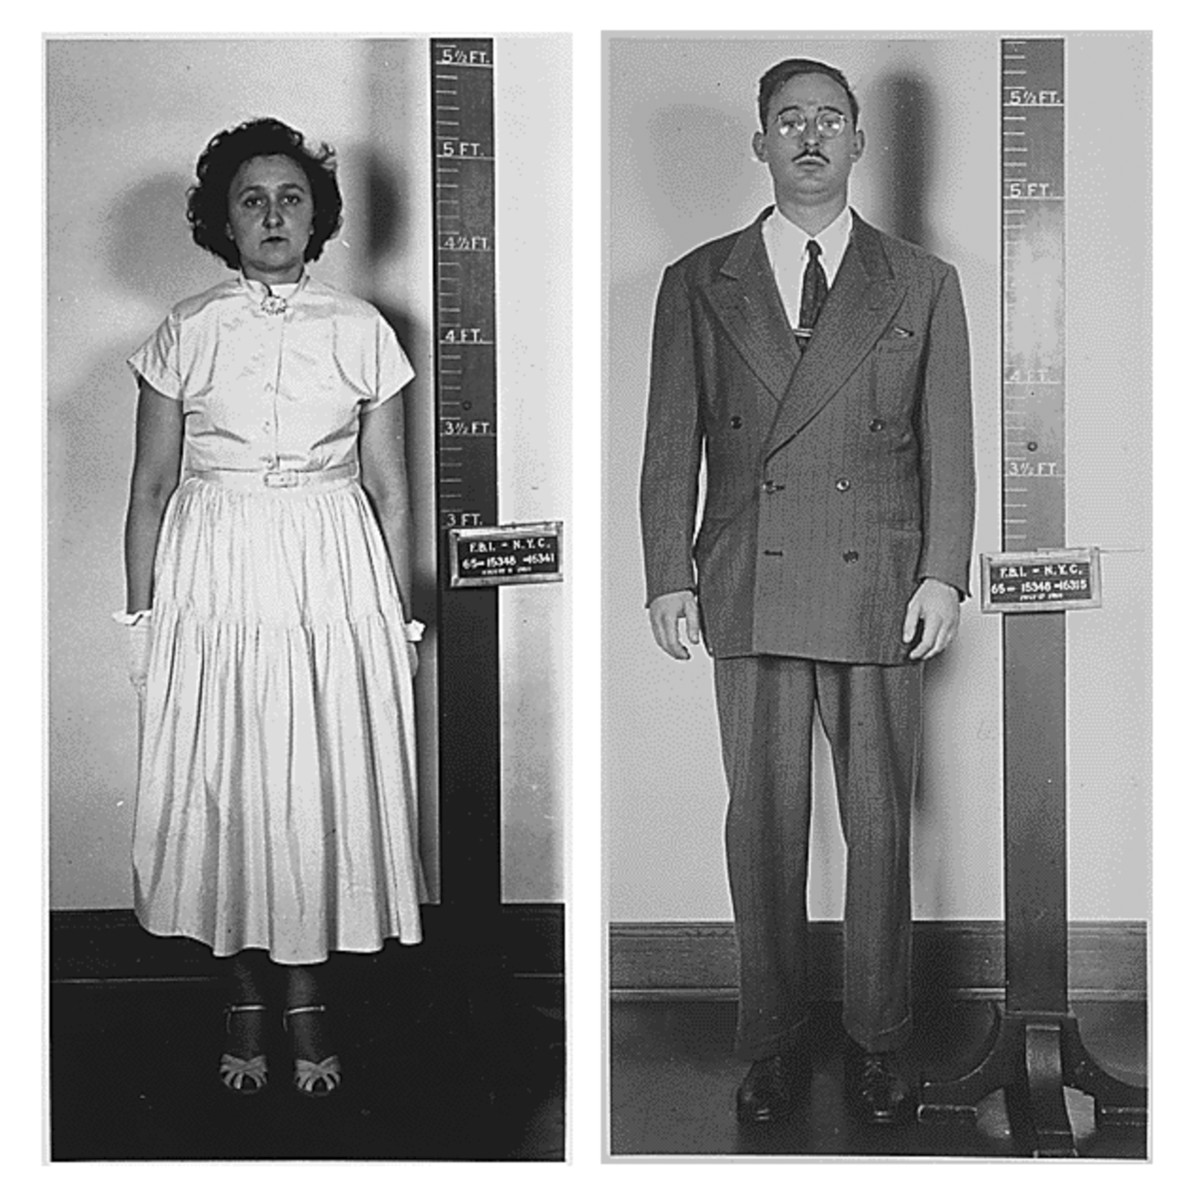 Ethel and Julius Rosenberg following their arrest by the FBI in New York City for espionage, 1950.